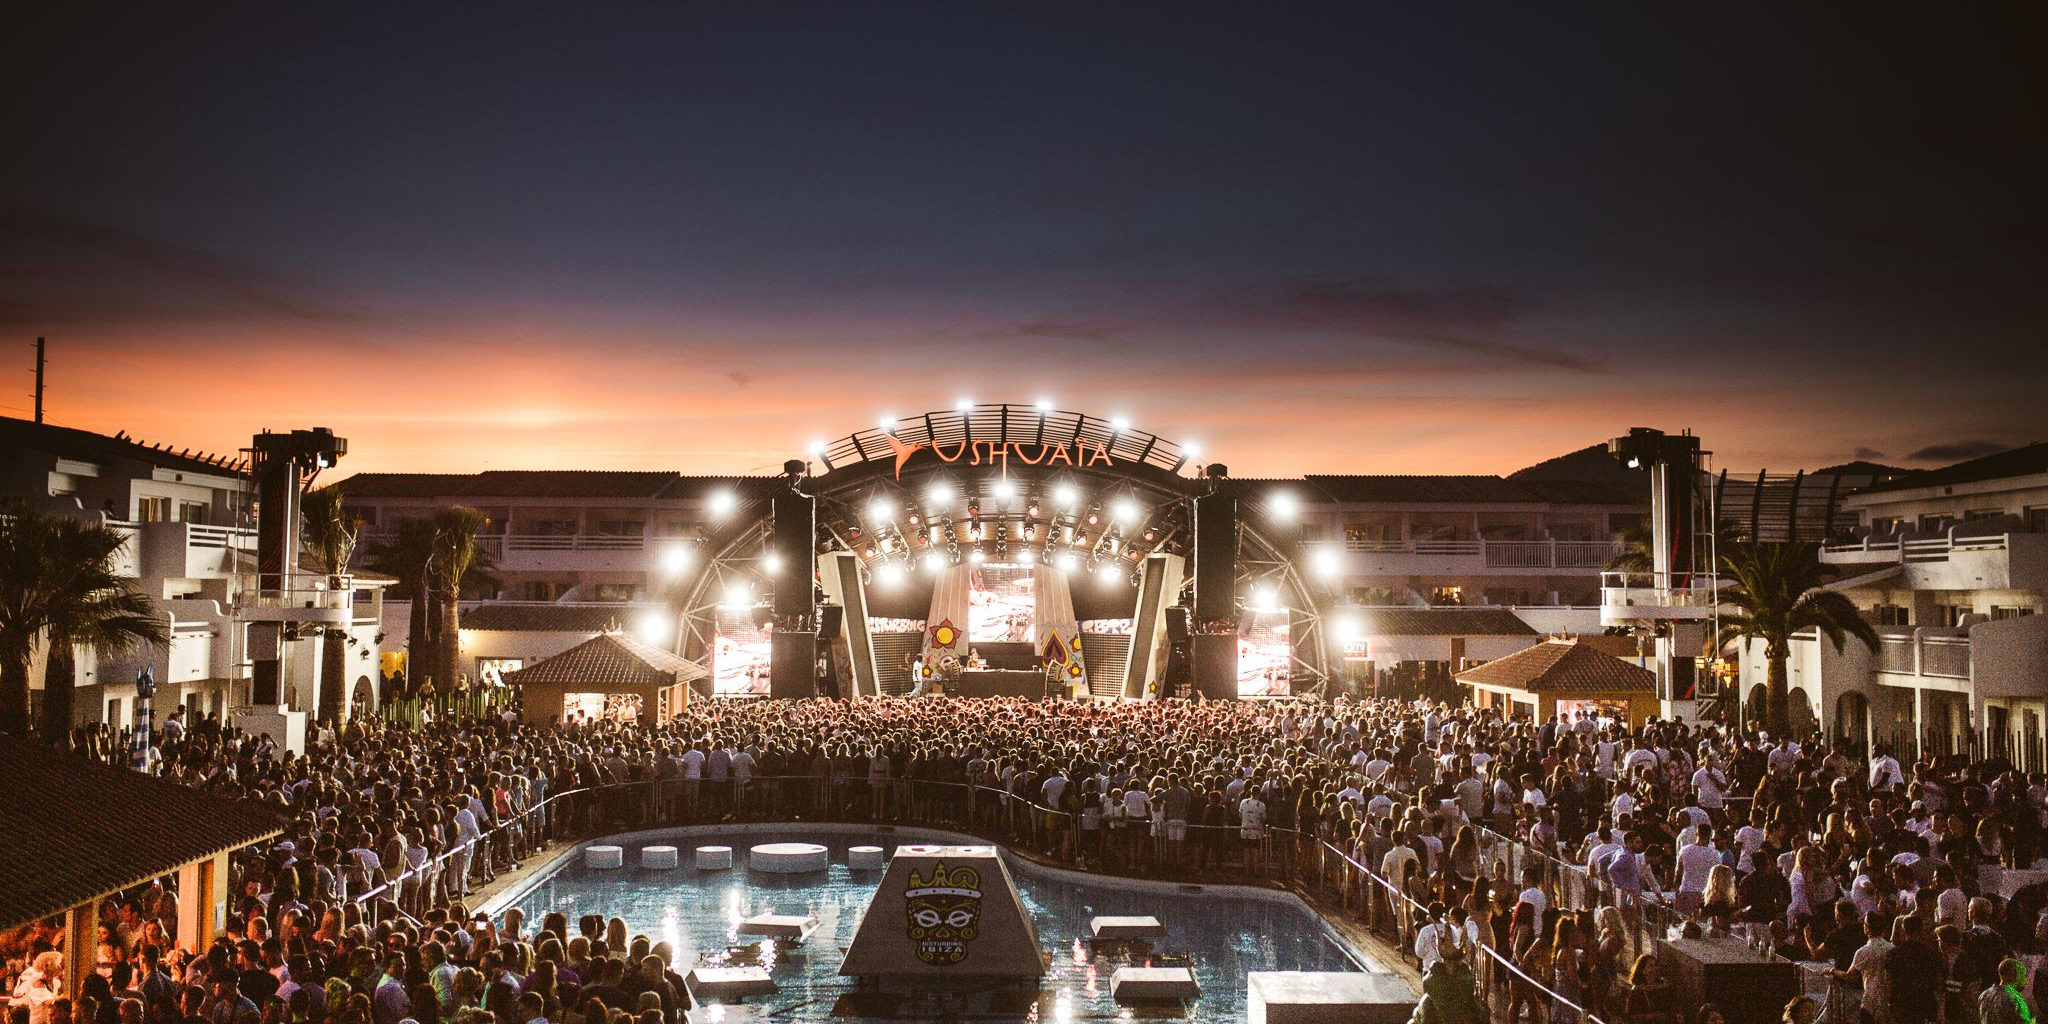 Tinie Tempah performing at Disturbing Ibiza